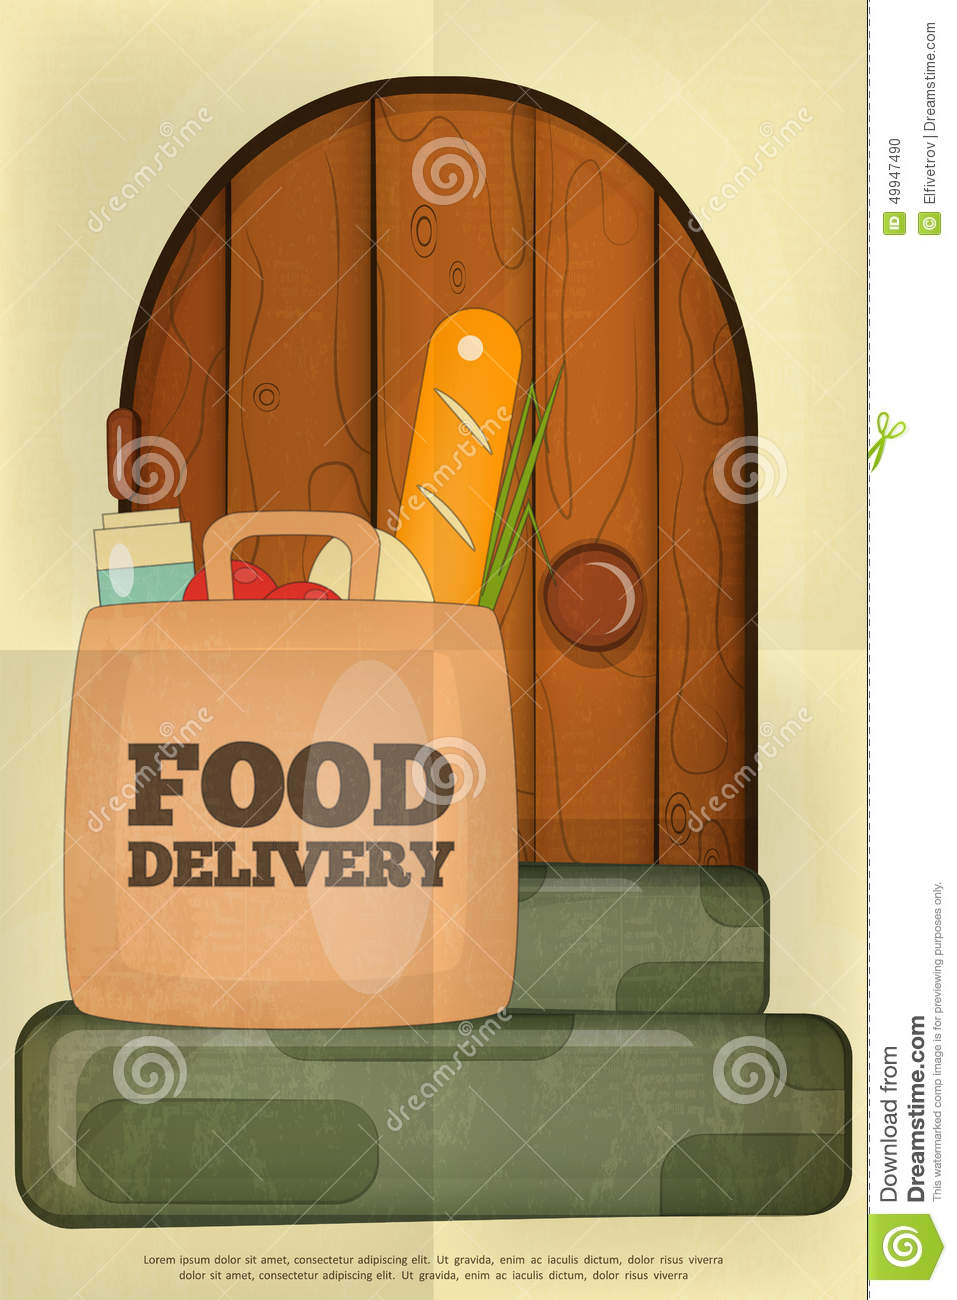 Delivery Stock Vector - Image: 49947490